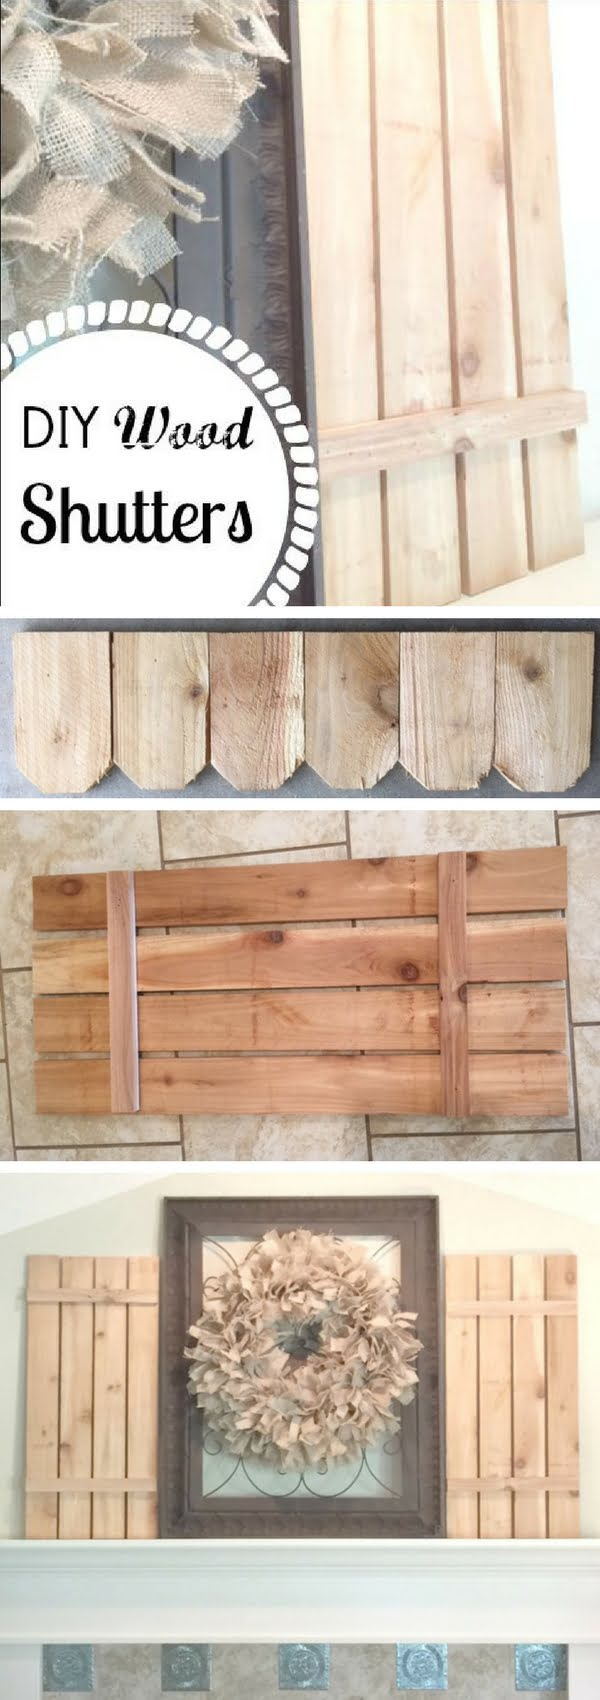 How to make DIY wood shutters